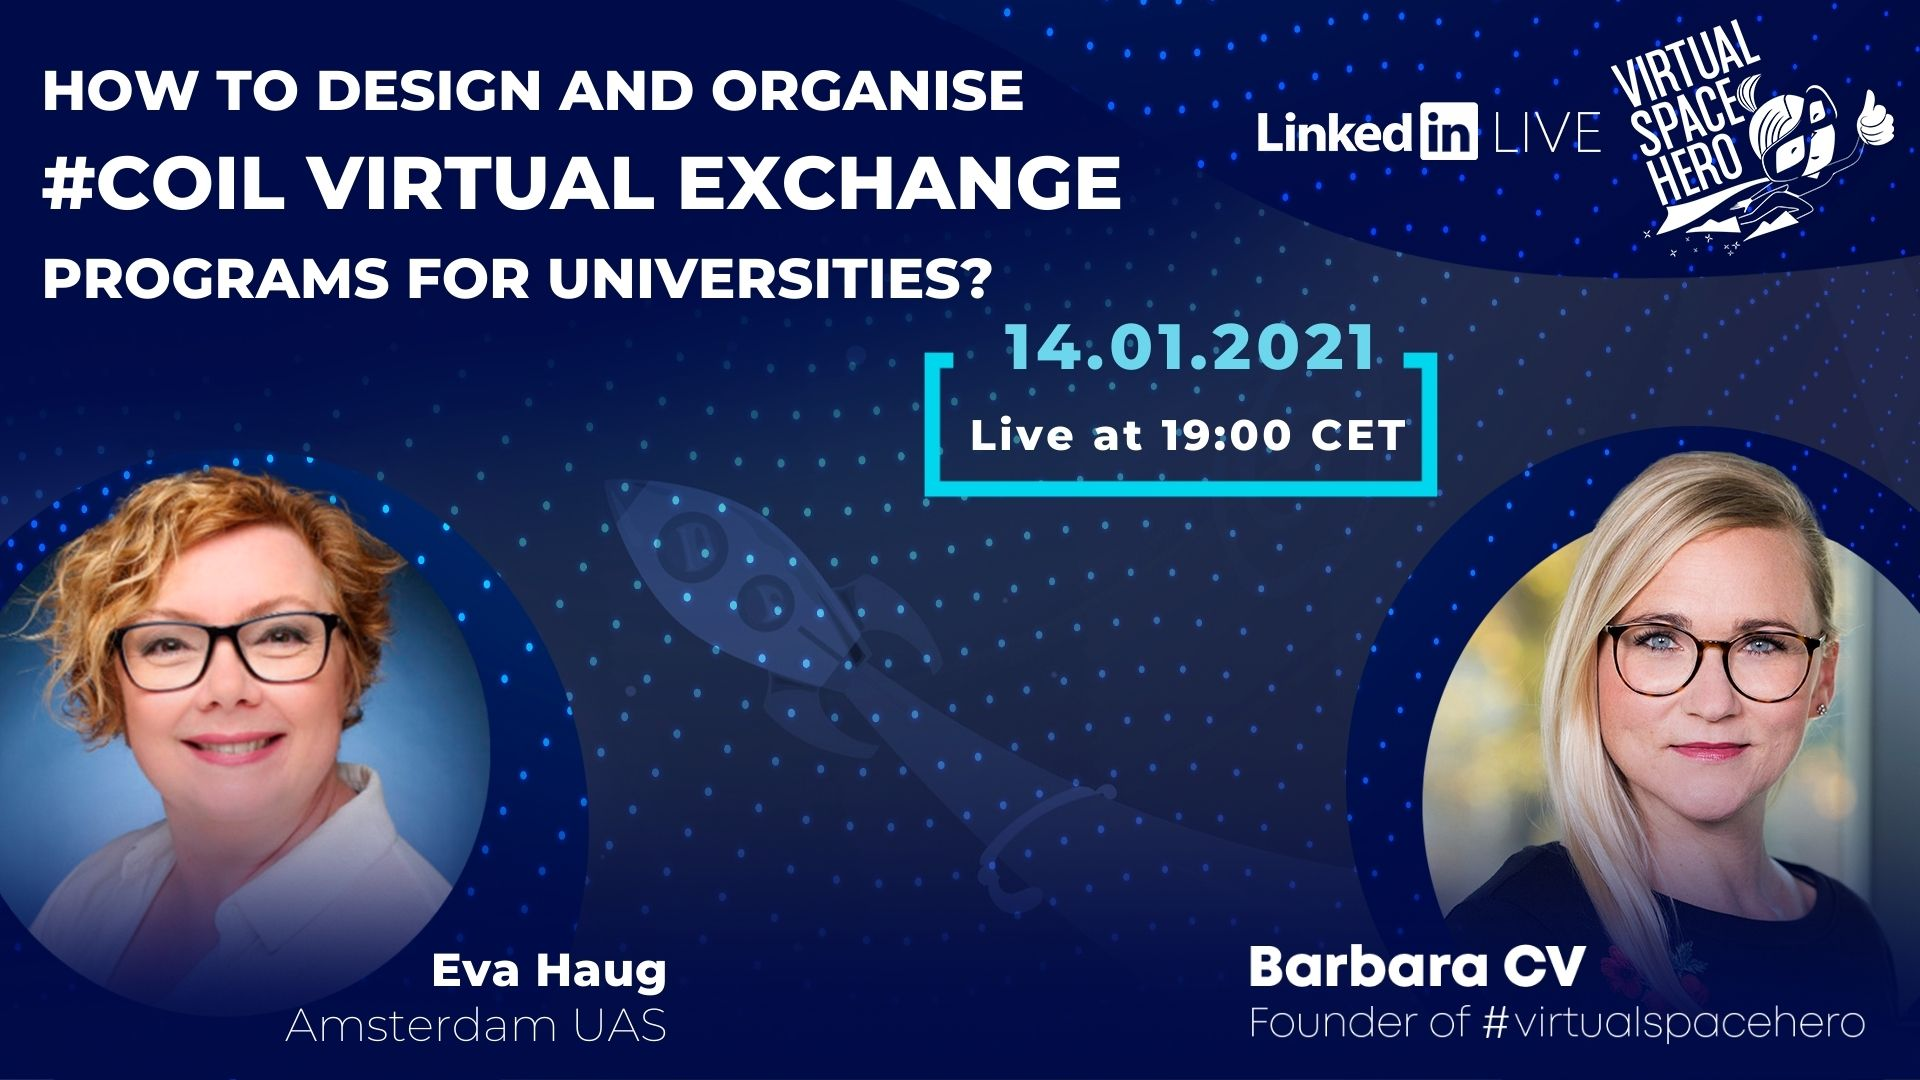 How to design and organize virtual exchange (COIL) programs for universities?